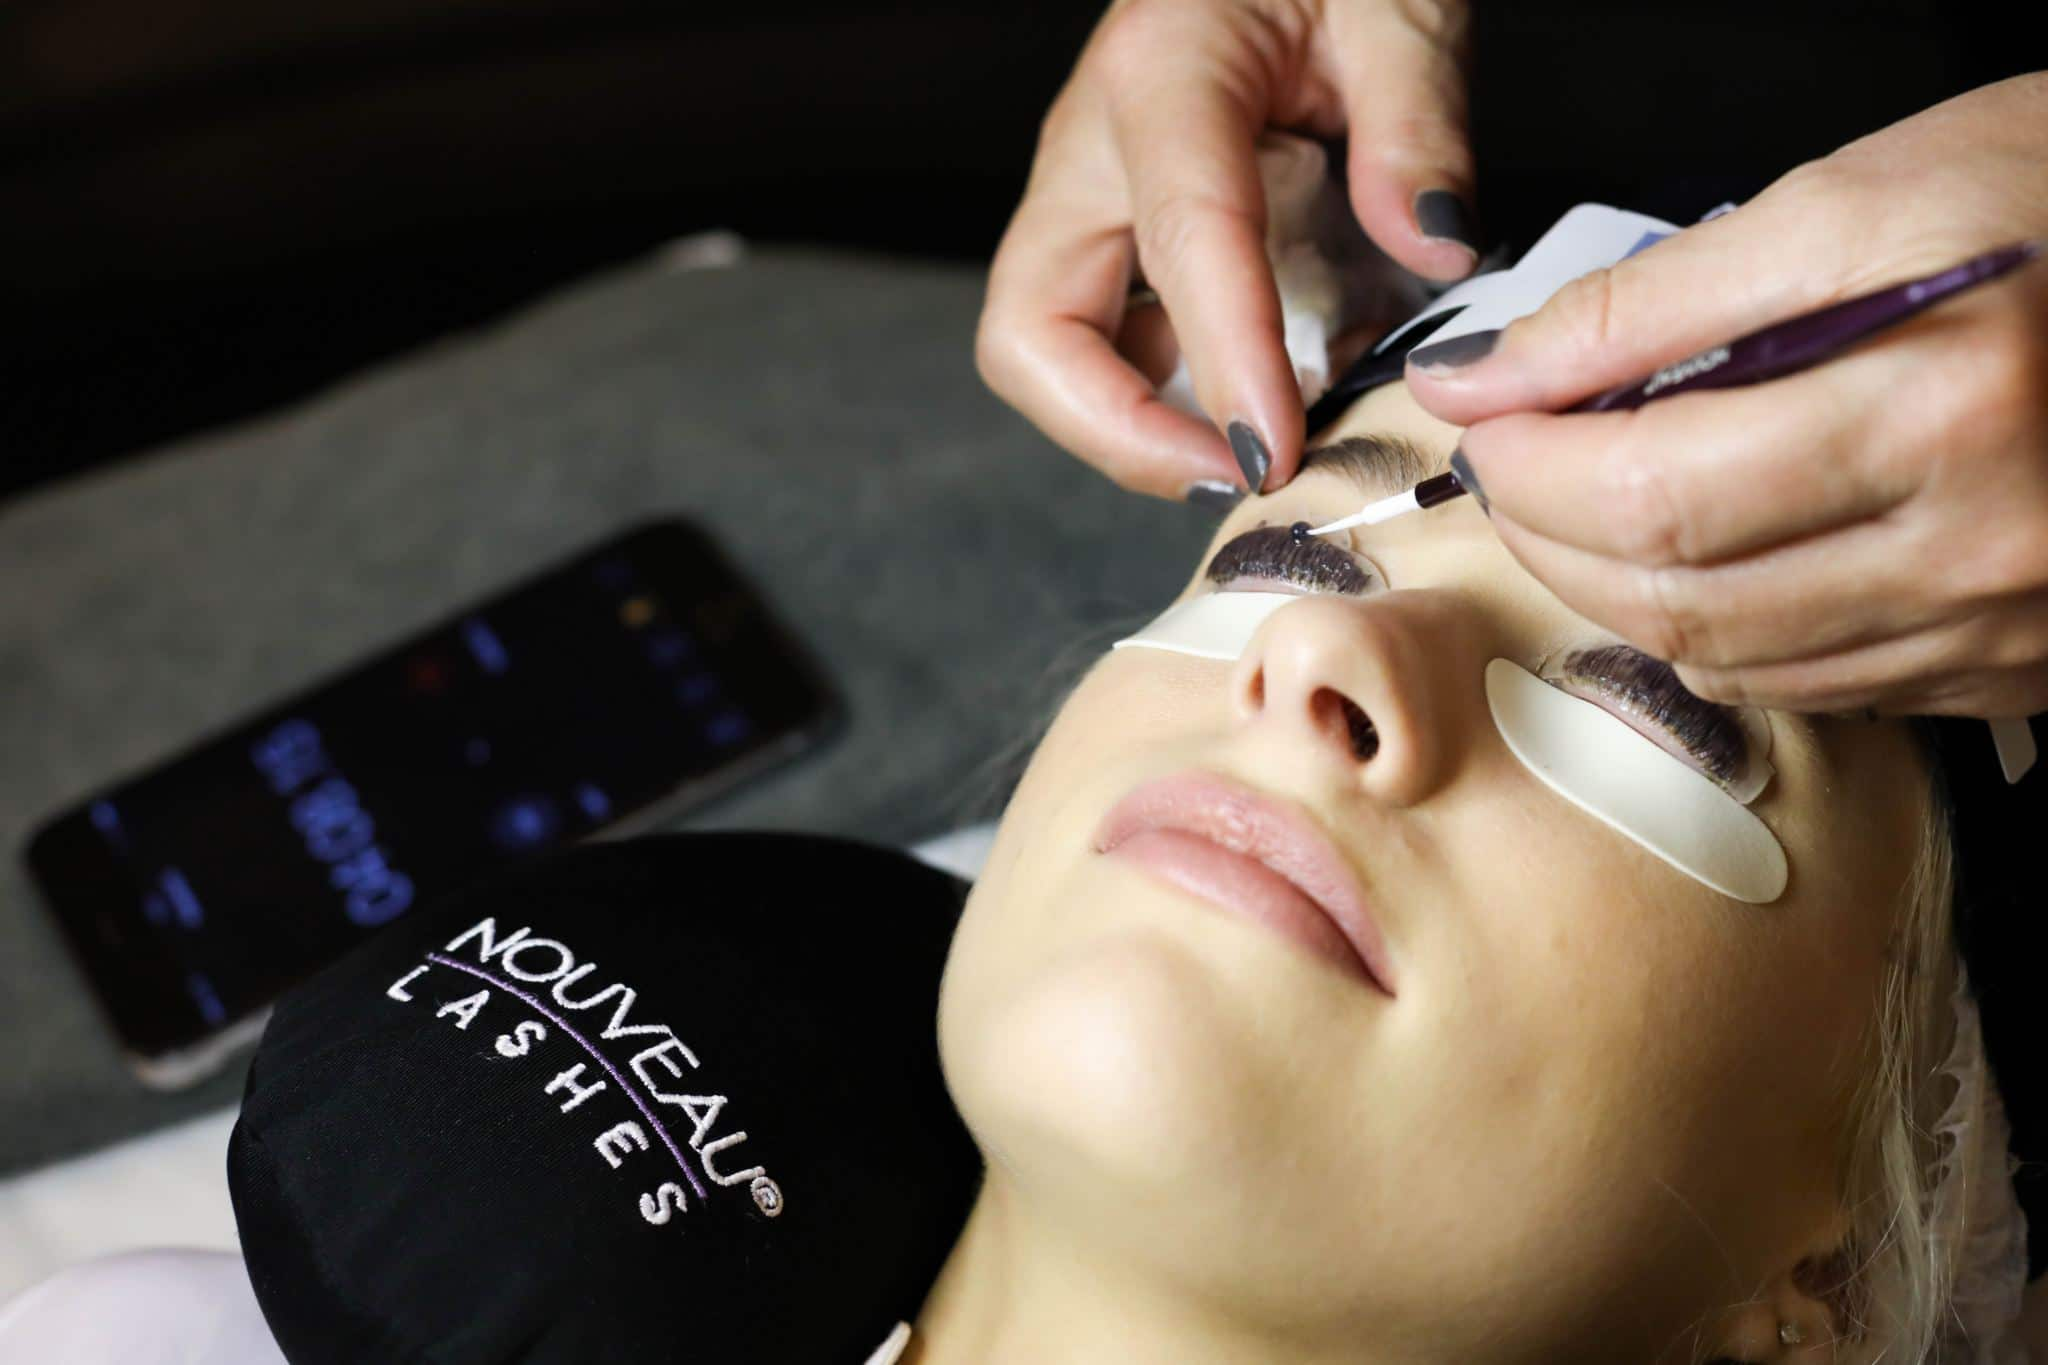 still-havent-heard-of-a-lash-lift-heres-all-you-need-to-know